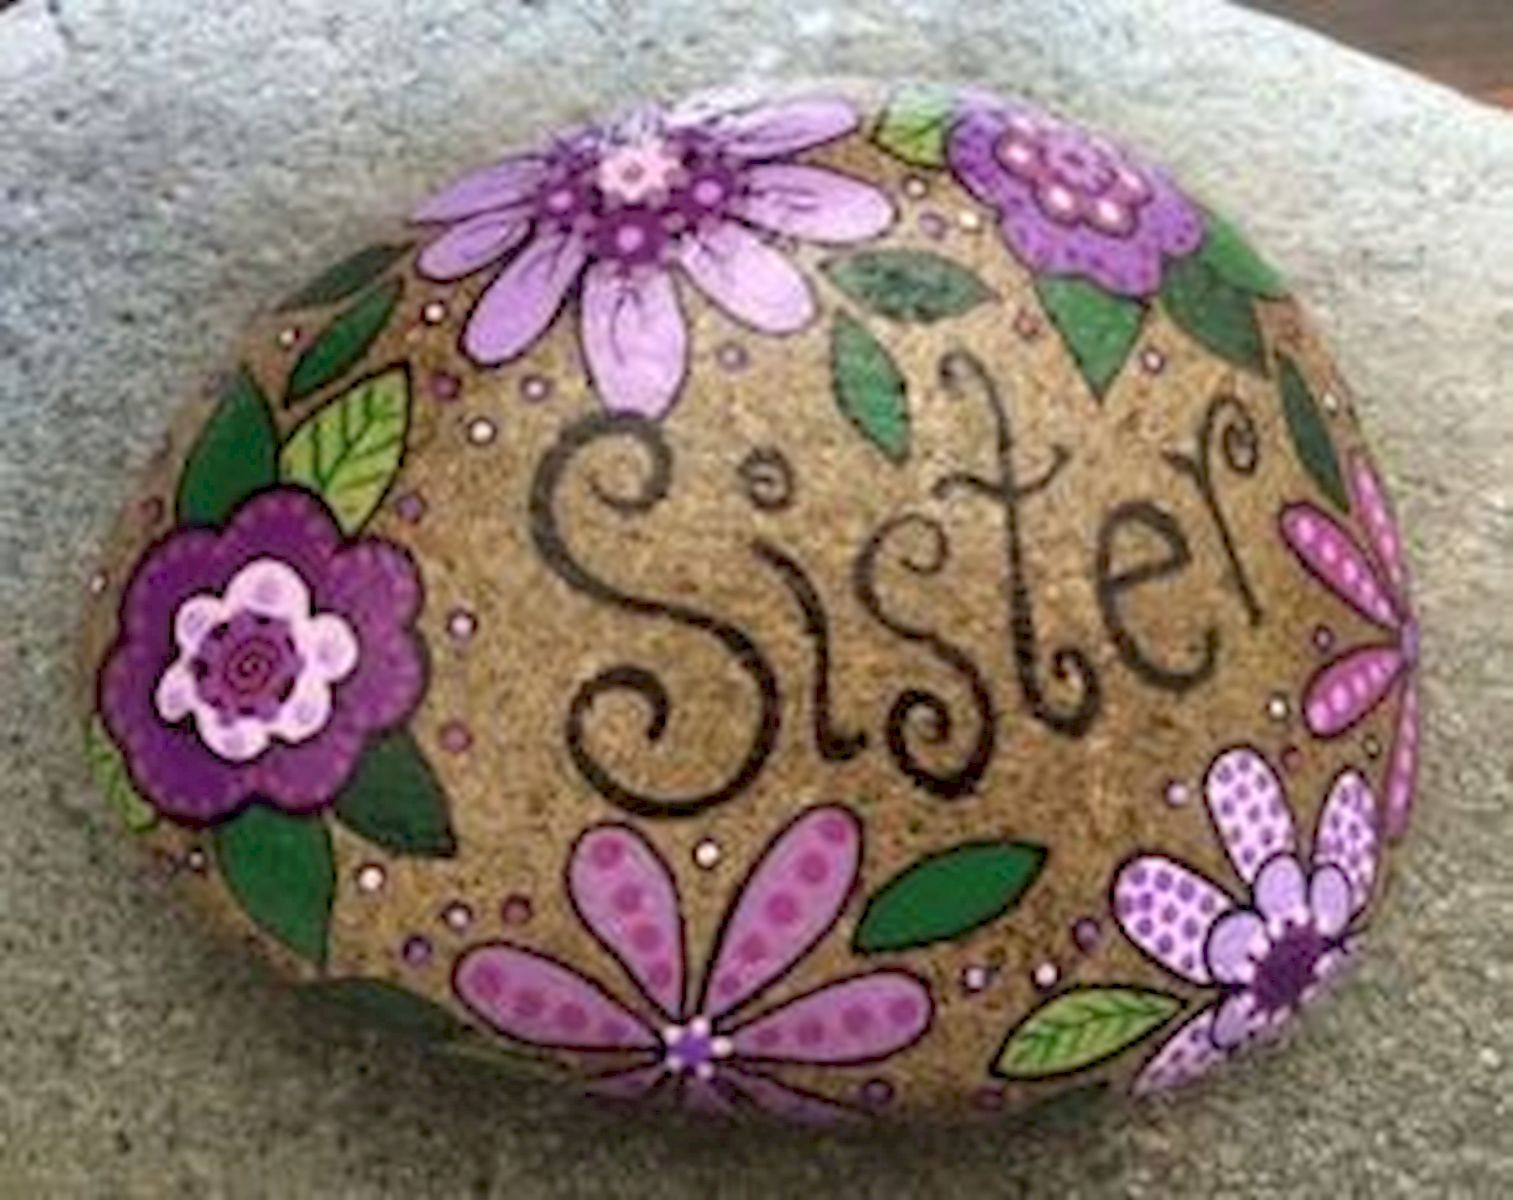 60+ Beautiful DIY Painted Rocks Flowers Ideas (35)